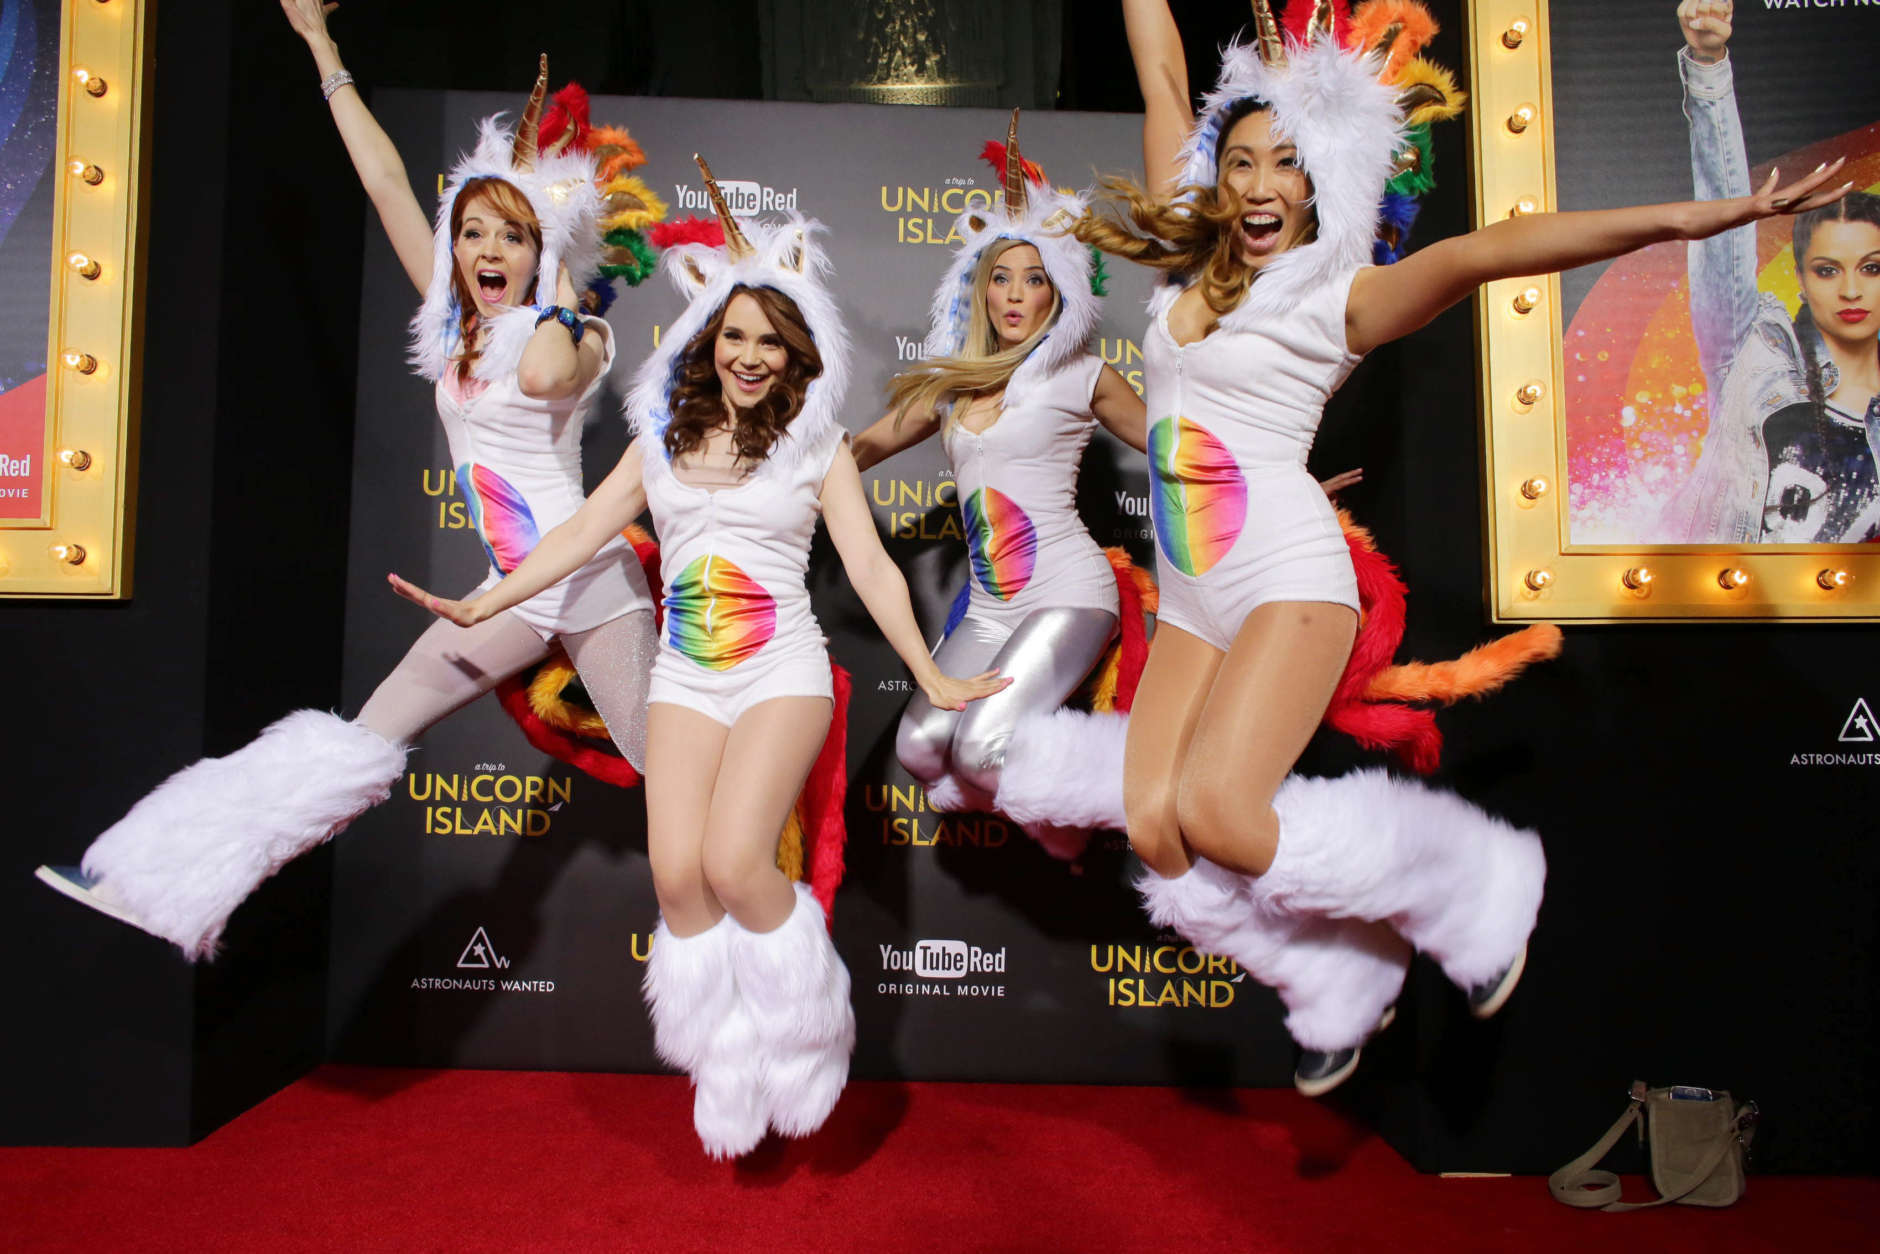 Lindsey Stirling, Rosanna Pansino, Justine Ezarik and Cassey Ho seen at YouTube star Lilly Singh debuts the World Premiere of 'A Trip to Unicorn Island' at TCL Chinese Theatre on Wednesday, Feb. 10, 2016, in Hollywood, CA. (Photo by Eric Charbonneau/Invision for Astronauts Wanted/AP Images)